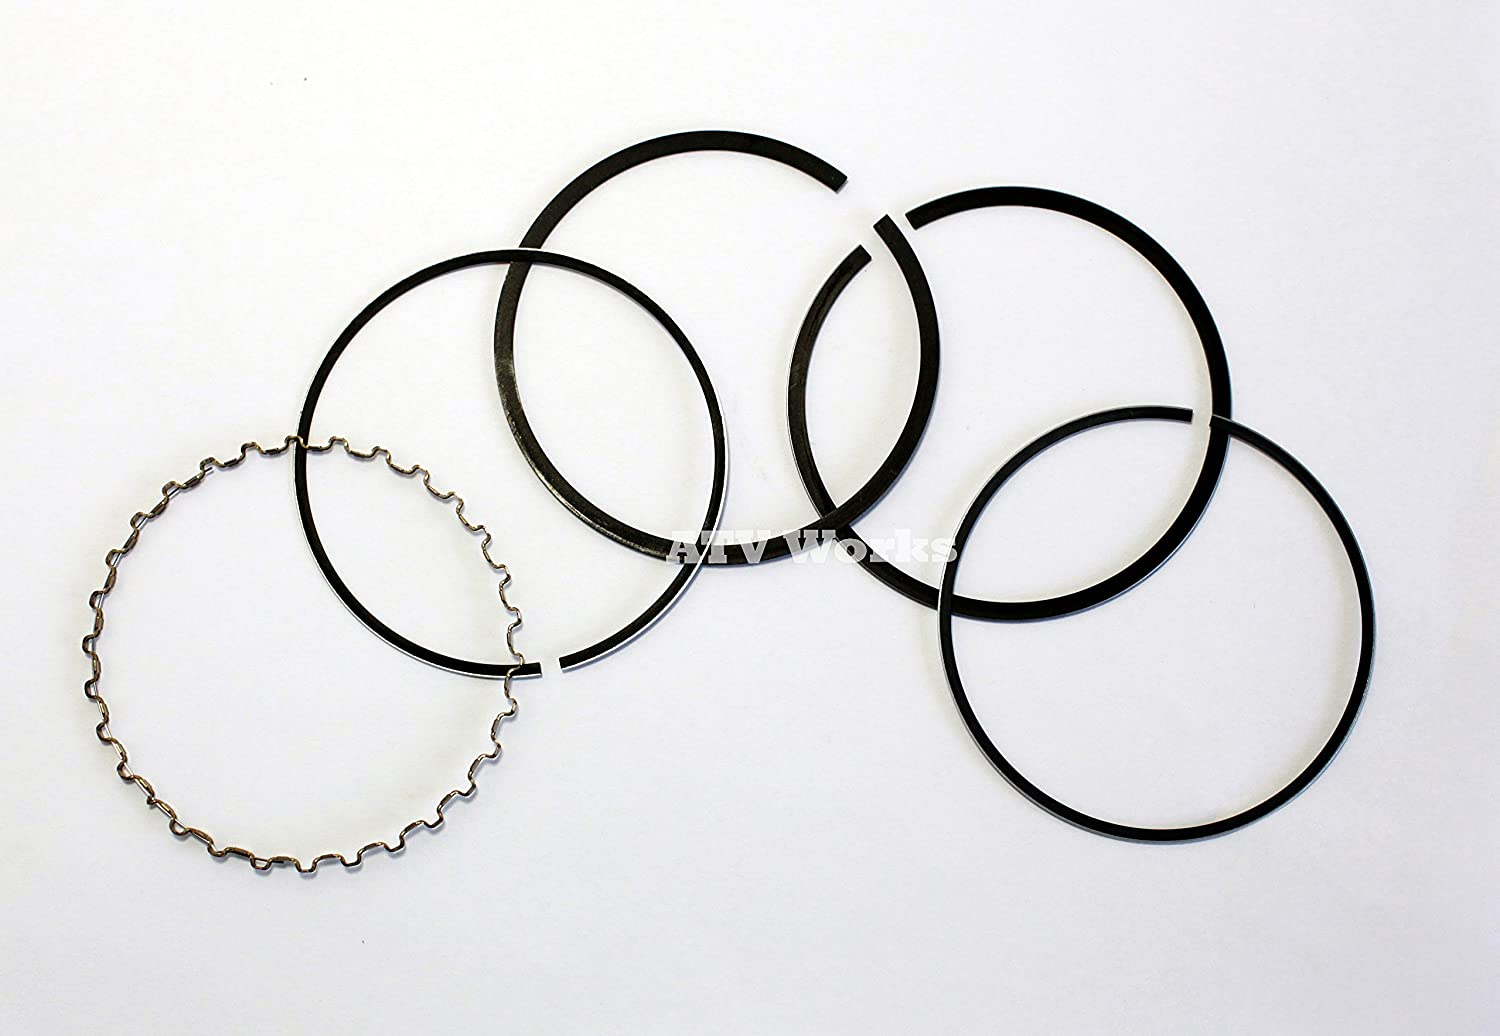 New OEM Standard Size Piston Rings - Mule (Gas Series) 2500, 2510, 2520, 3000, 3010, 3020, 4000, & 4010 (KAF620 Engines) ATVWorks